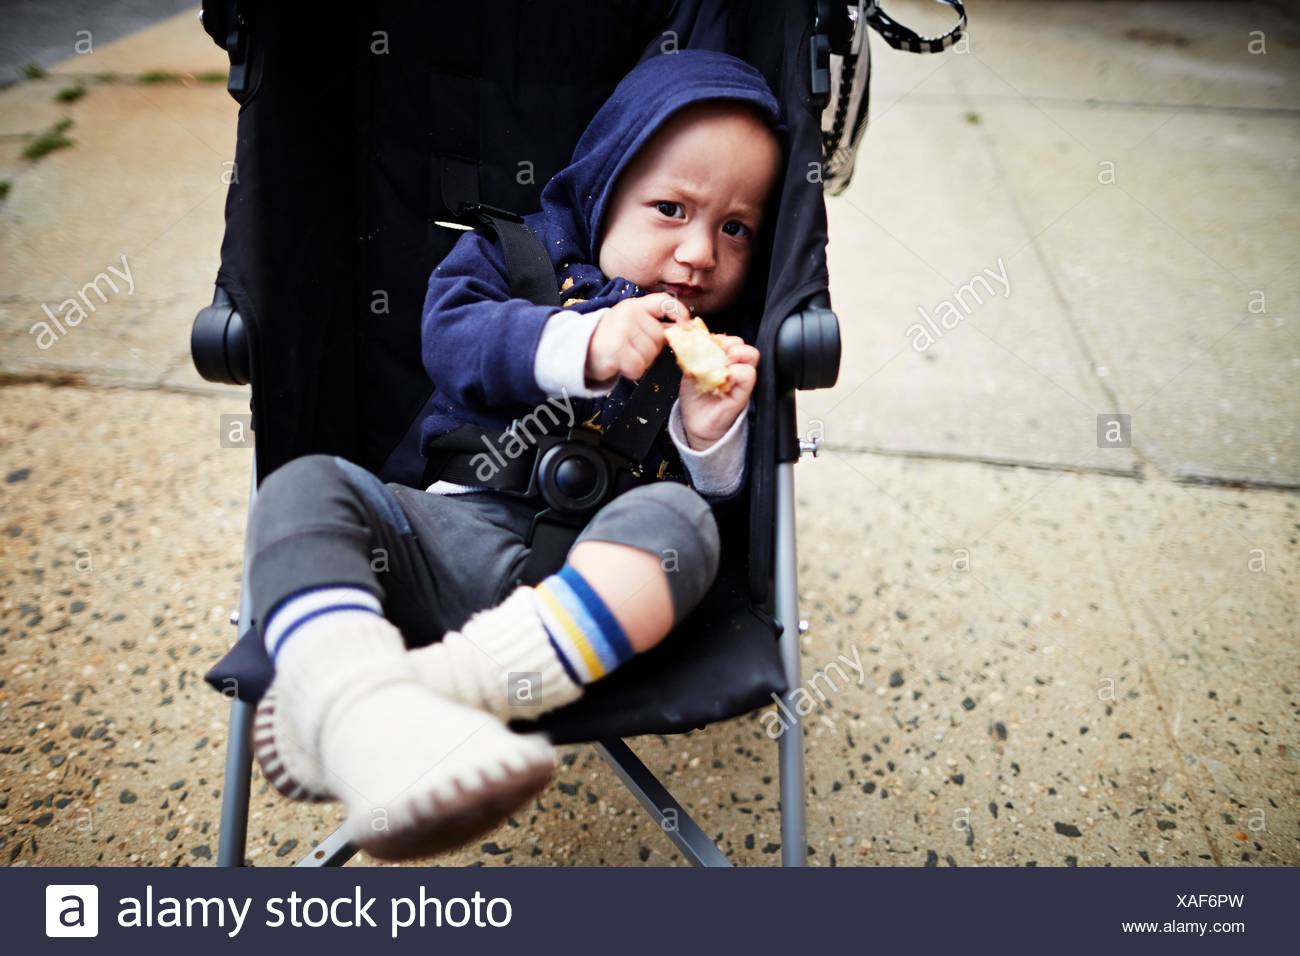 Baby boy holding cookie in carriage - Stock Image